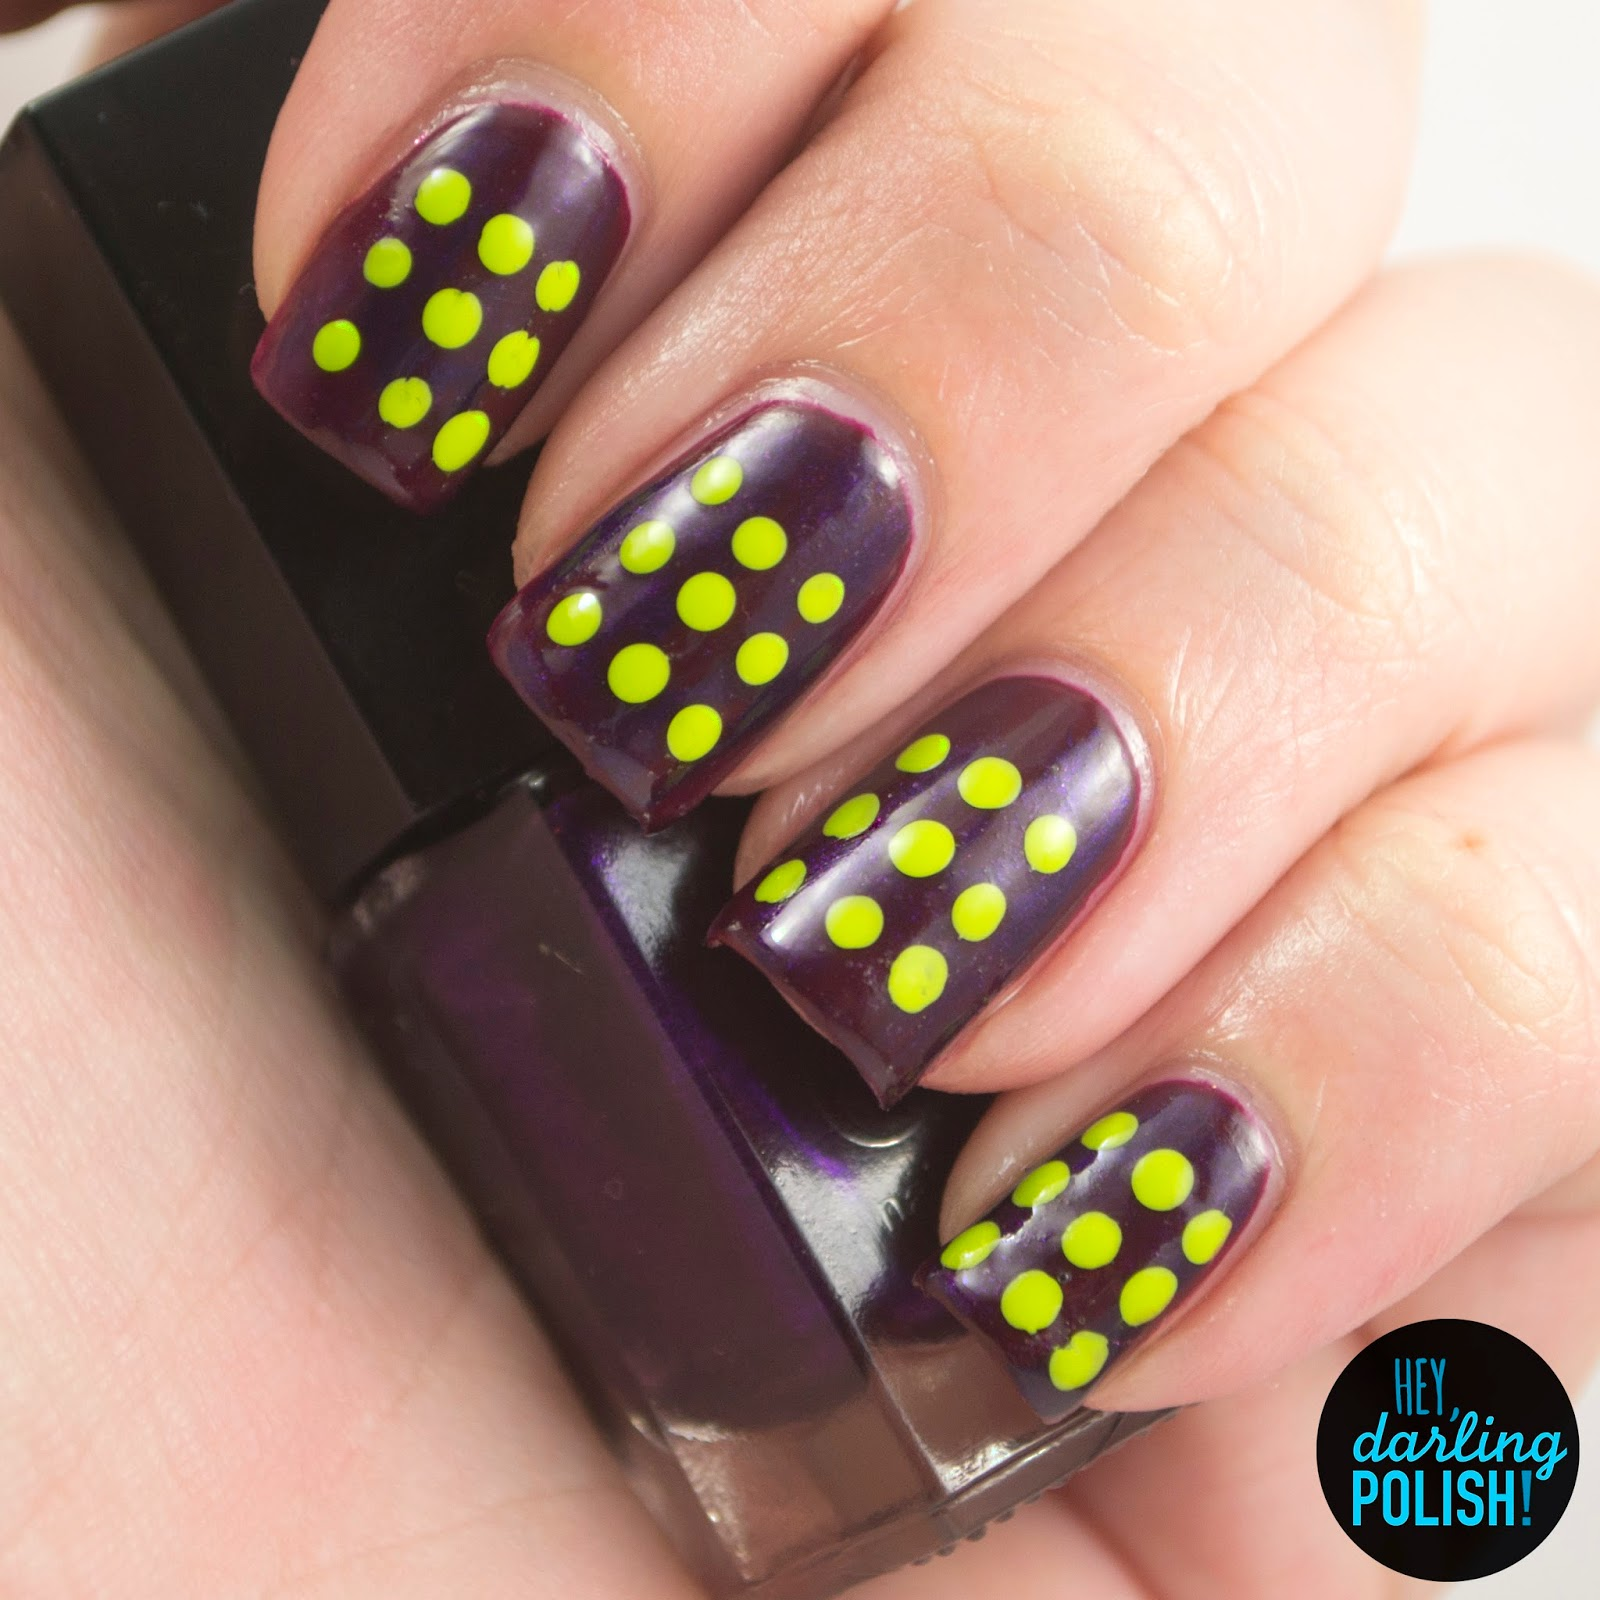 nails, nail art, nail polish, polish, dots, red, purple, green, hey darling polish, tri polish challenge, tpc